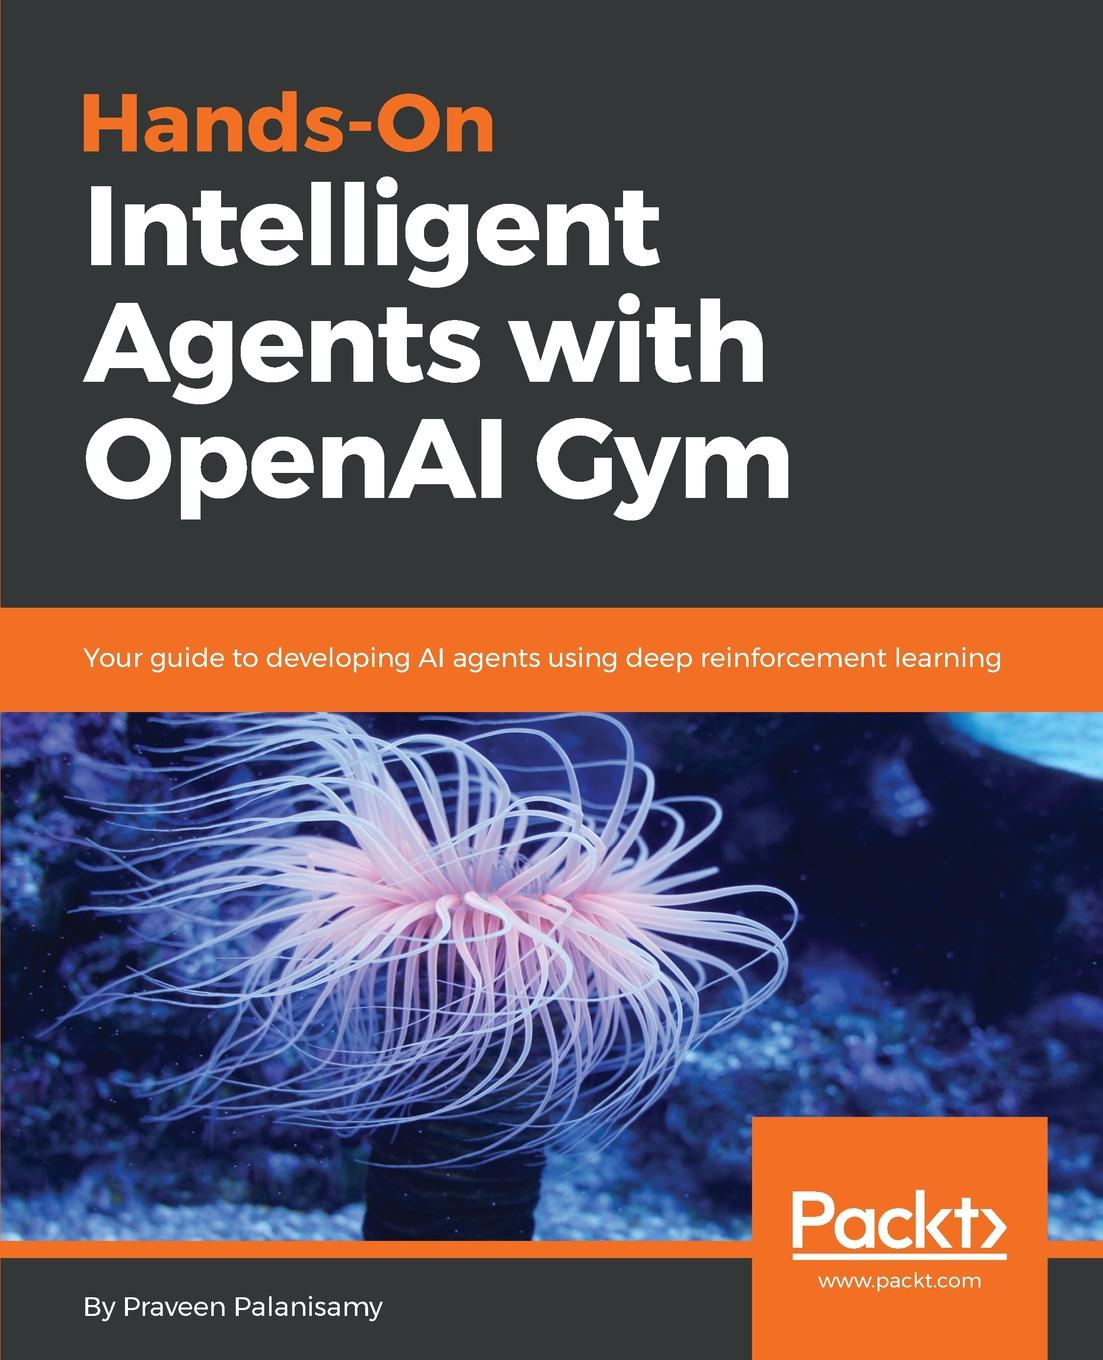 Praveen Palanisamy Hands-On Intelligent Agents with OpenAI Gym mobile agents